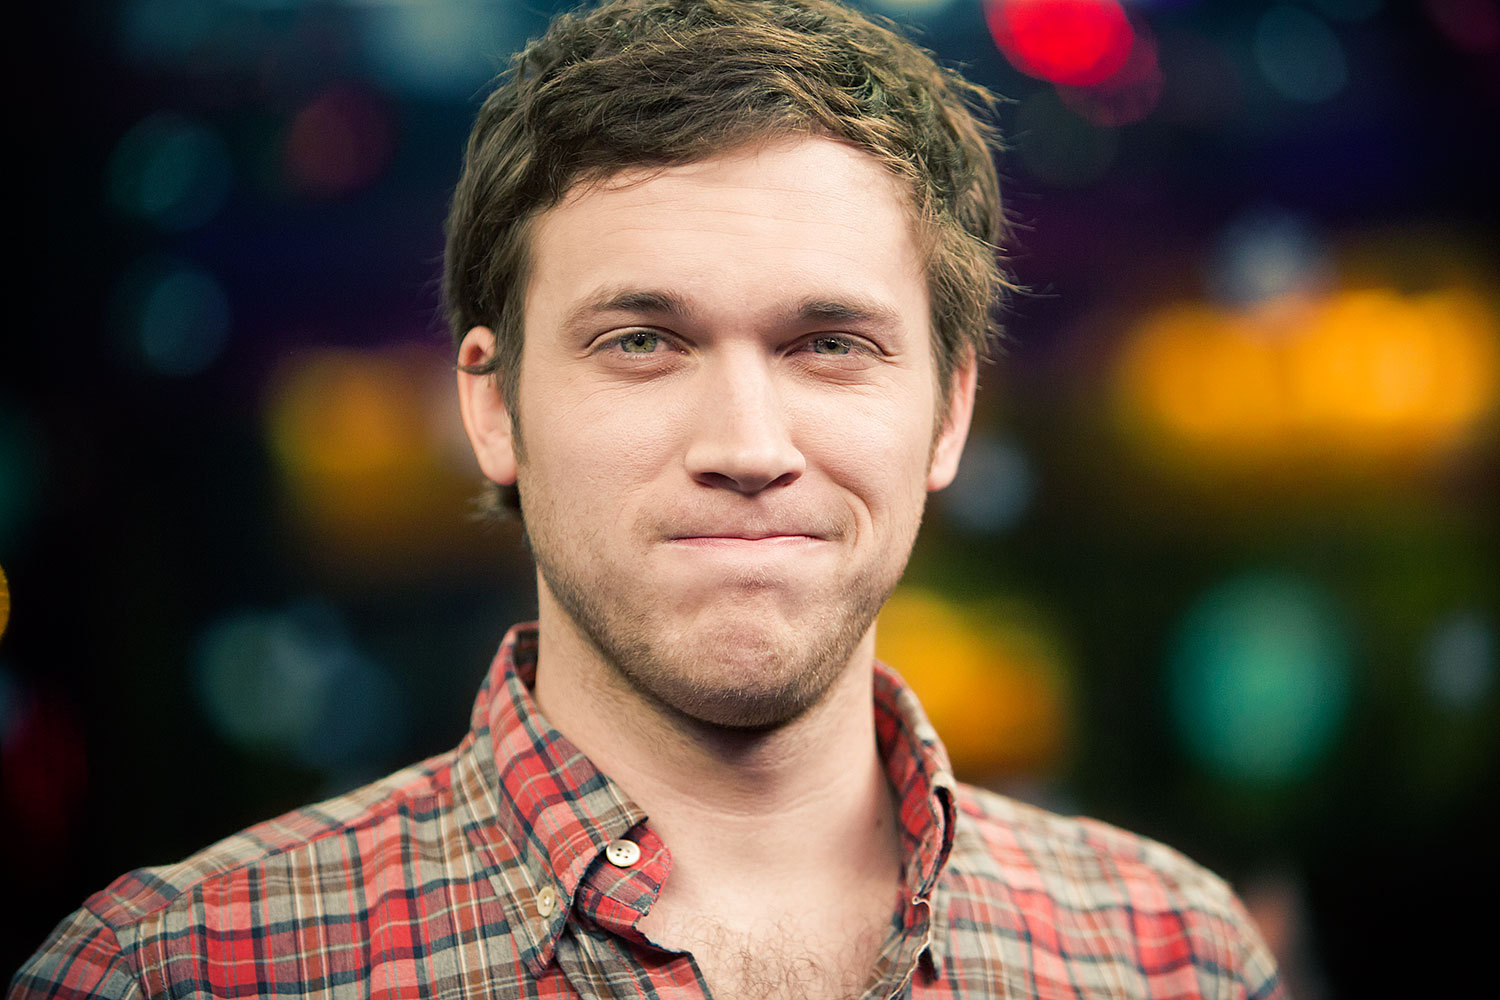 phillip-phillips-season-12